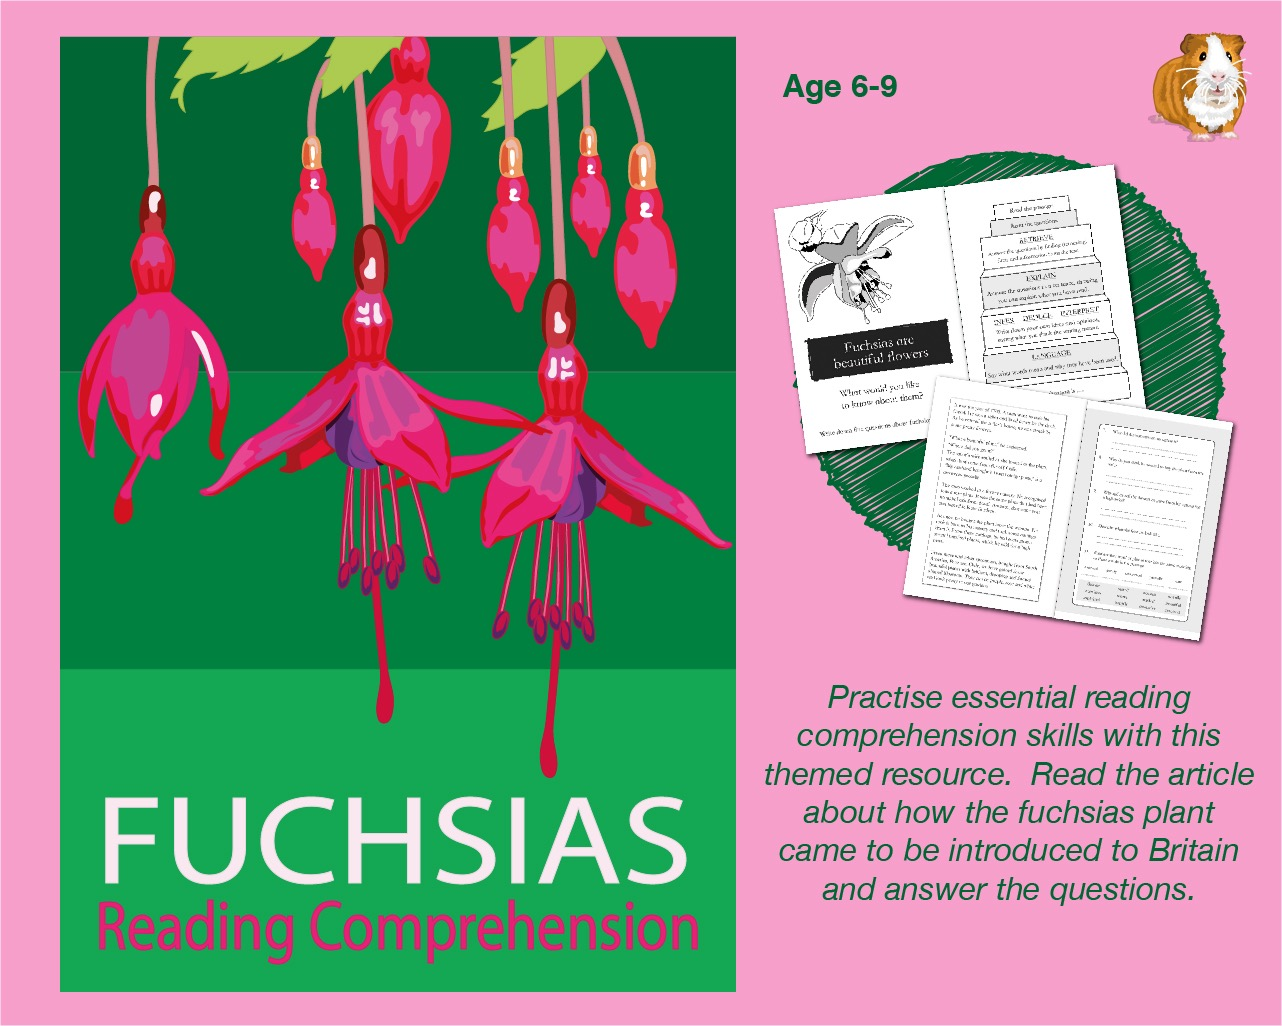 Let's Practise Our Reading Comprehension: Fuchsias Are Beautiful Flowers (6-9 years)